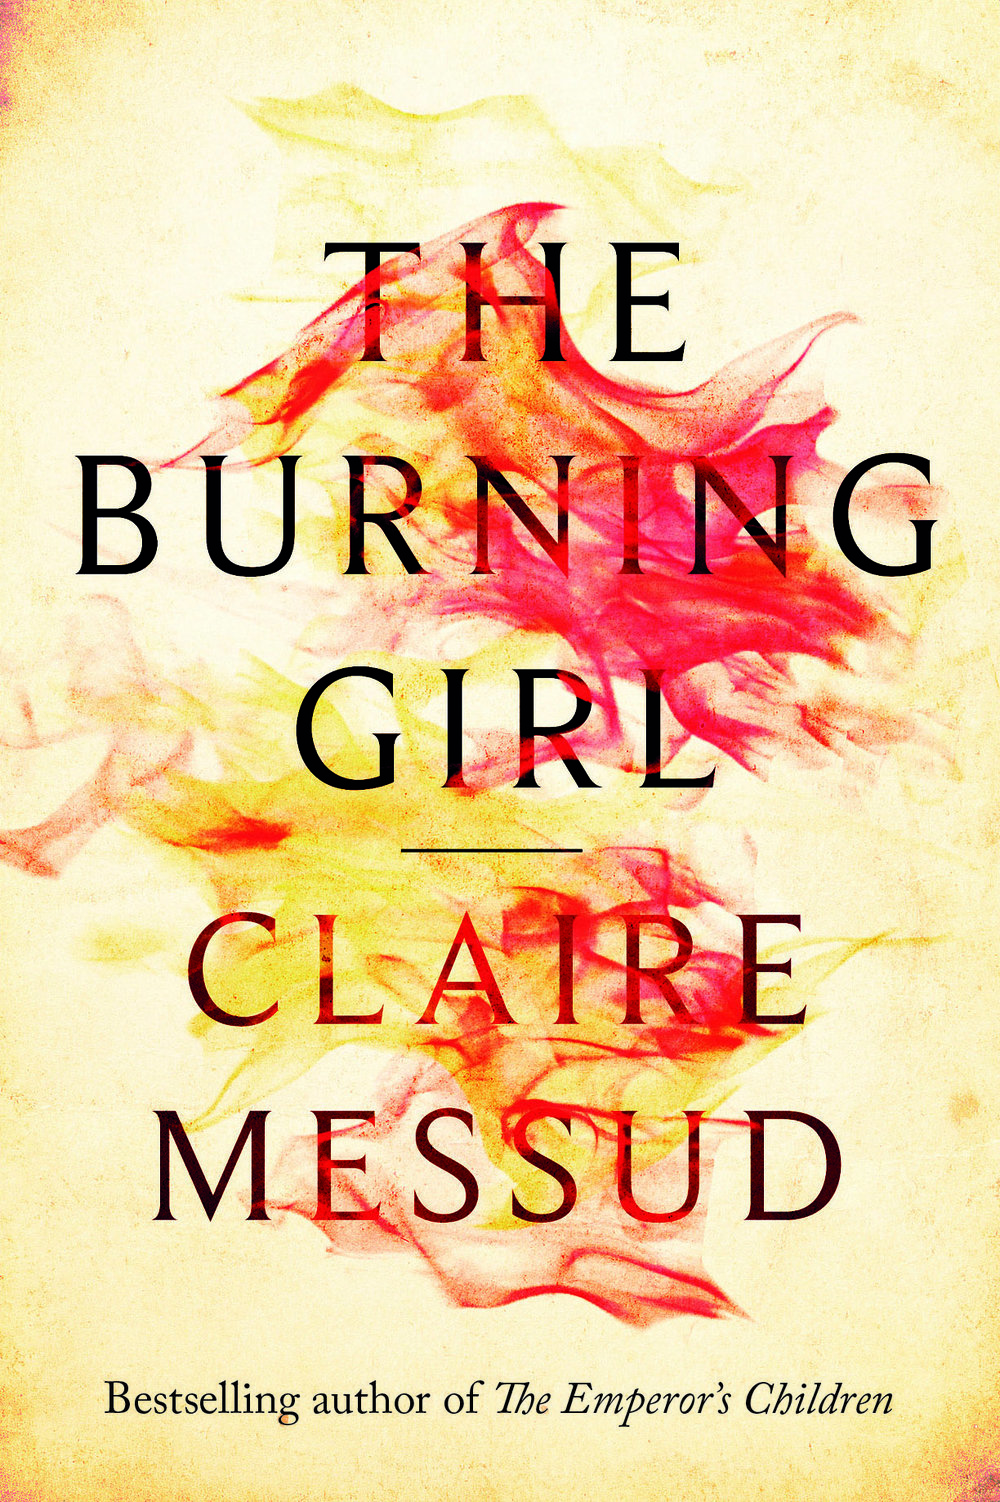 TheBurningGirl_cover.jpg